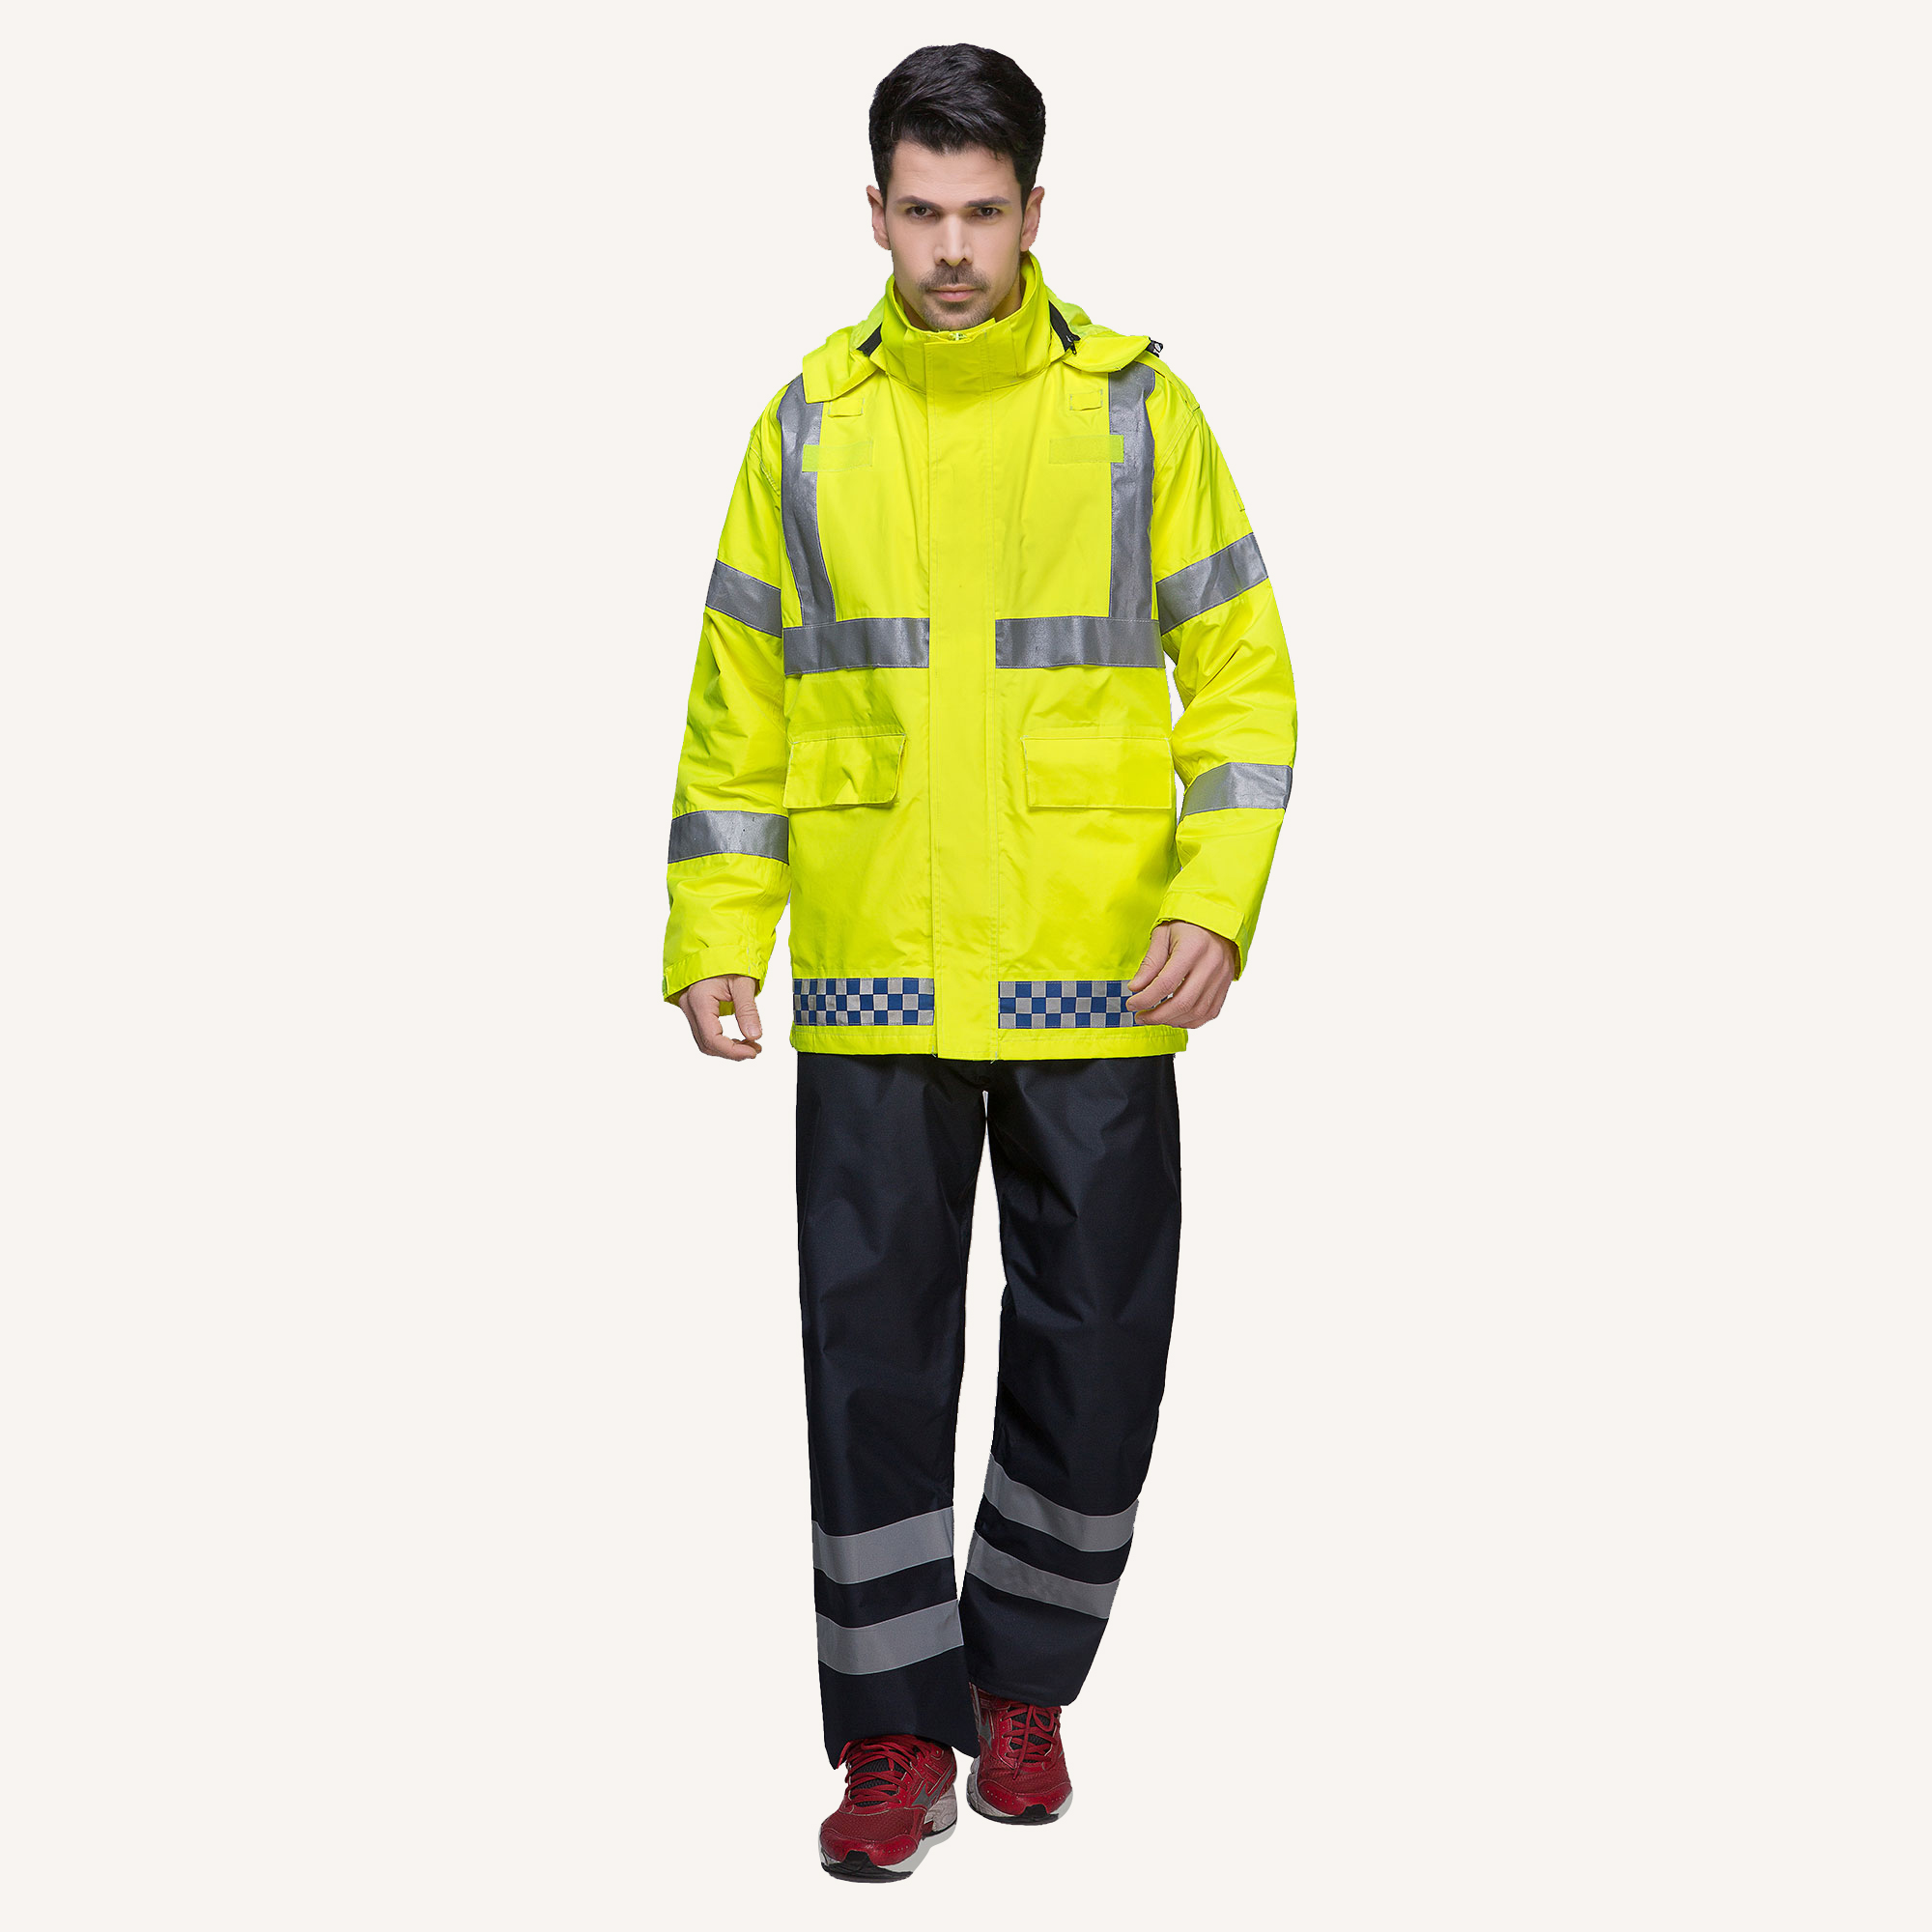 6999  Waterproof Mens Workwear Suit